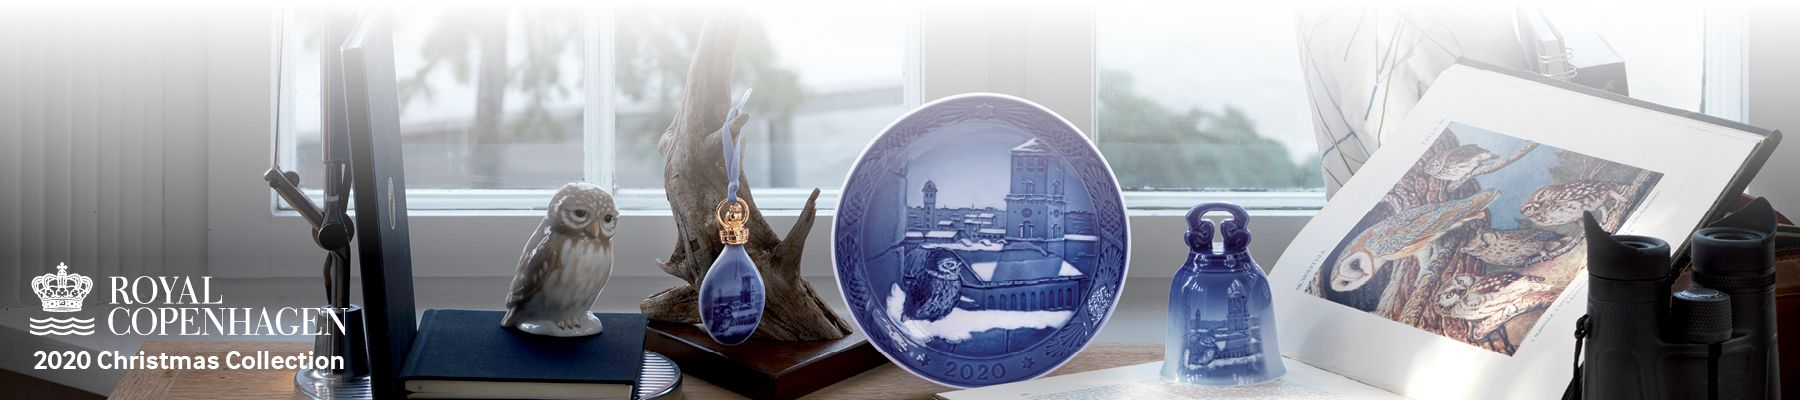 Royal Copenhagen Christmas Collectibles